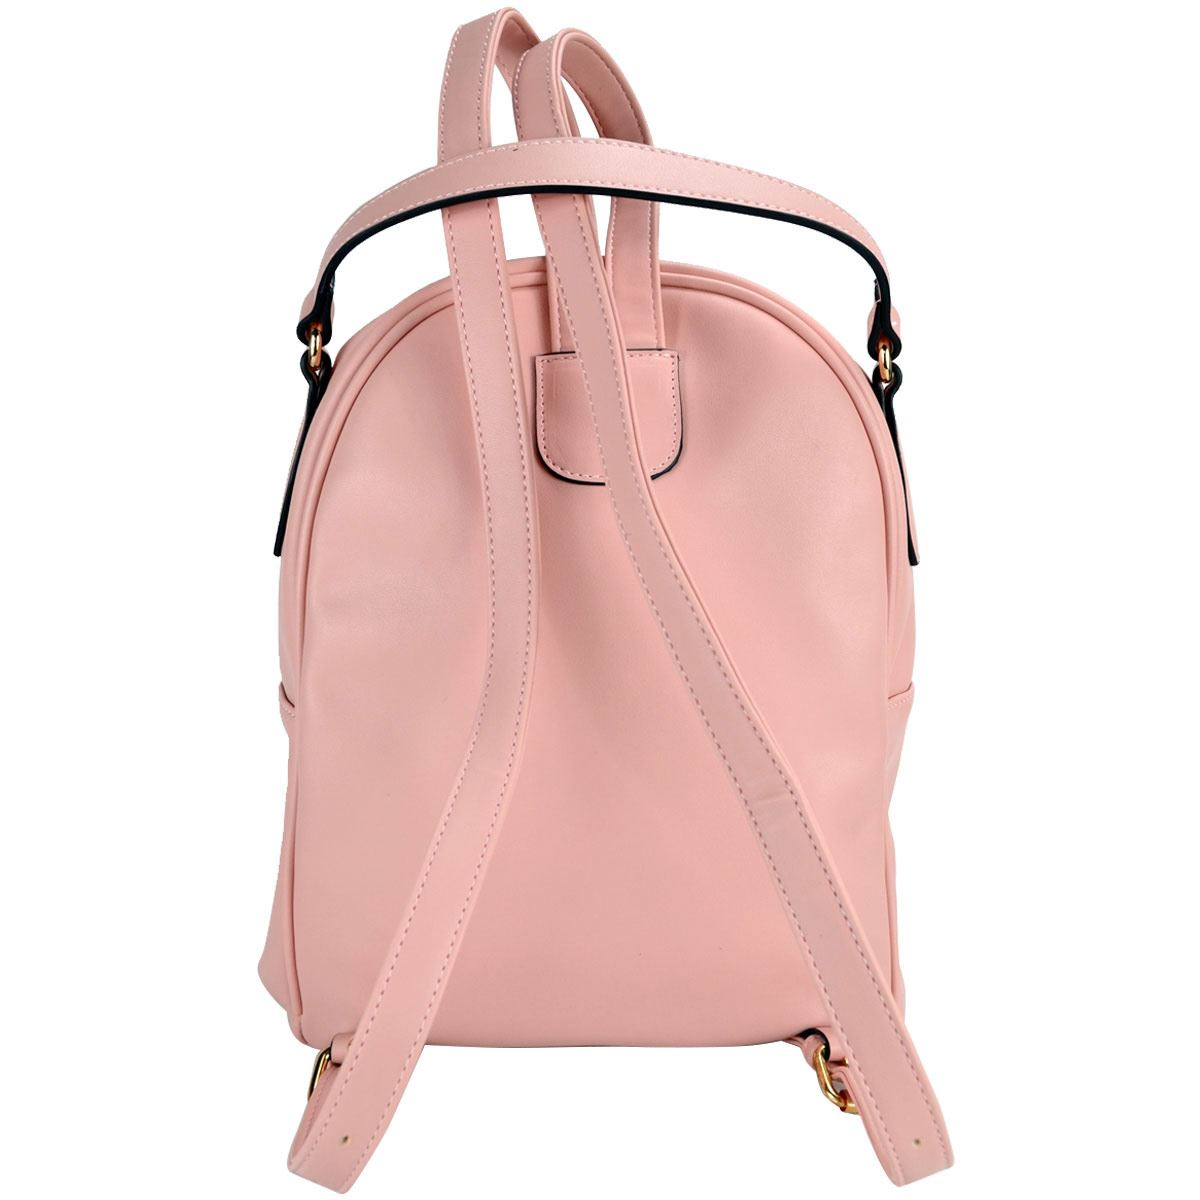 Bolsa Huser Backpack Mediano Modelo Sh19409-2 Color Rosa